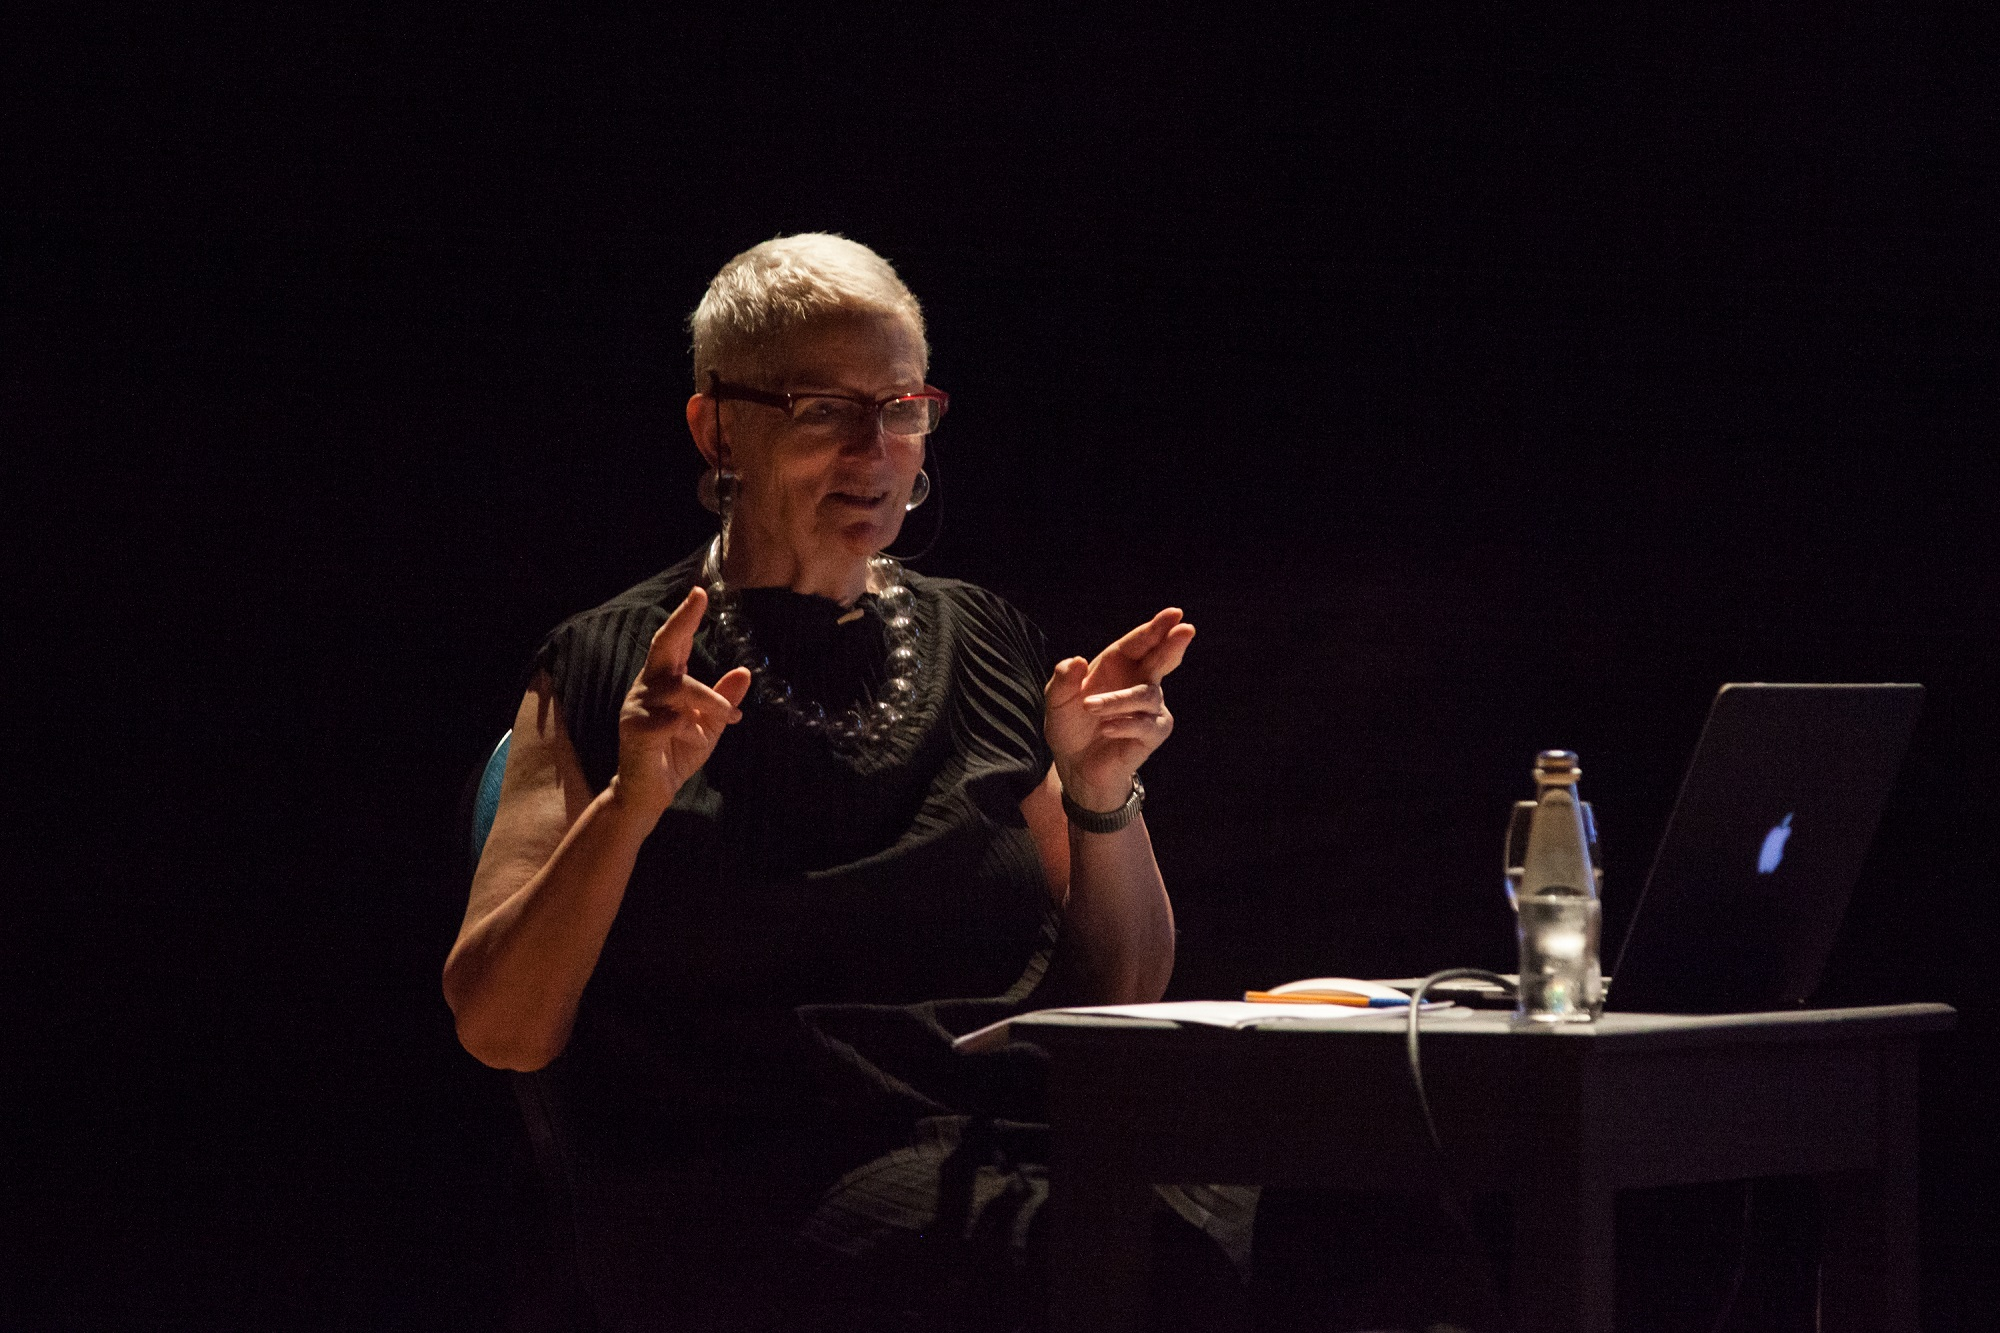 Mieke Bal giving a talk at last year's edition of VIVA. Photo: Elisa von Brockdorff